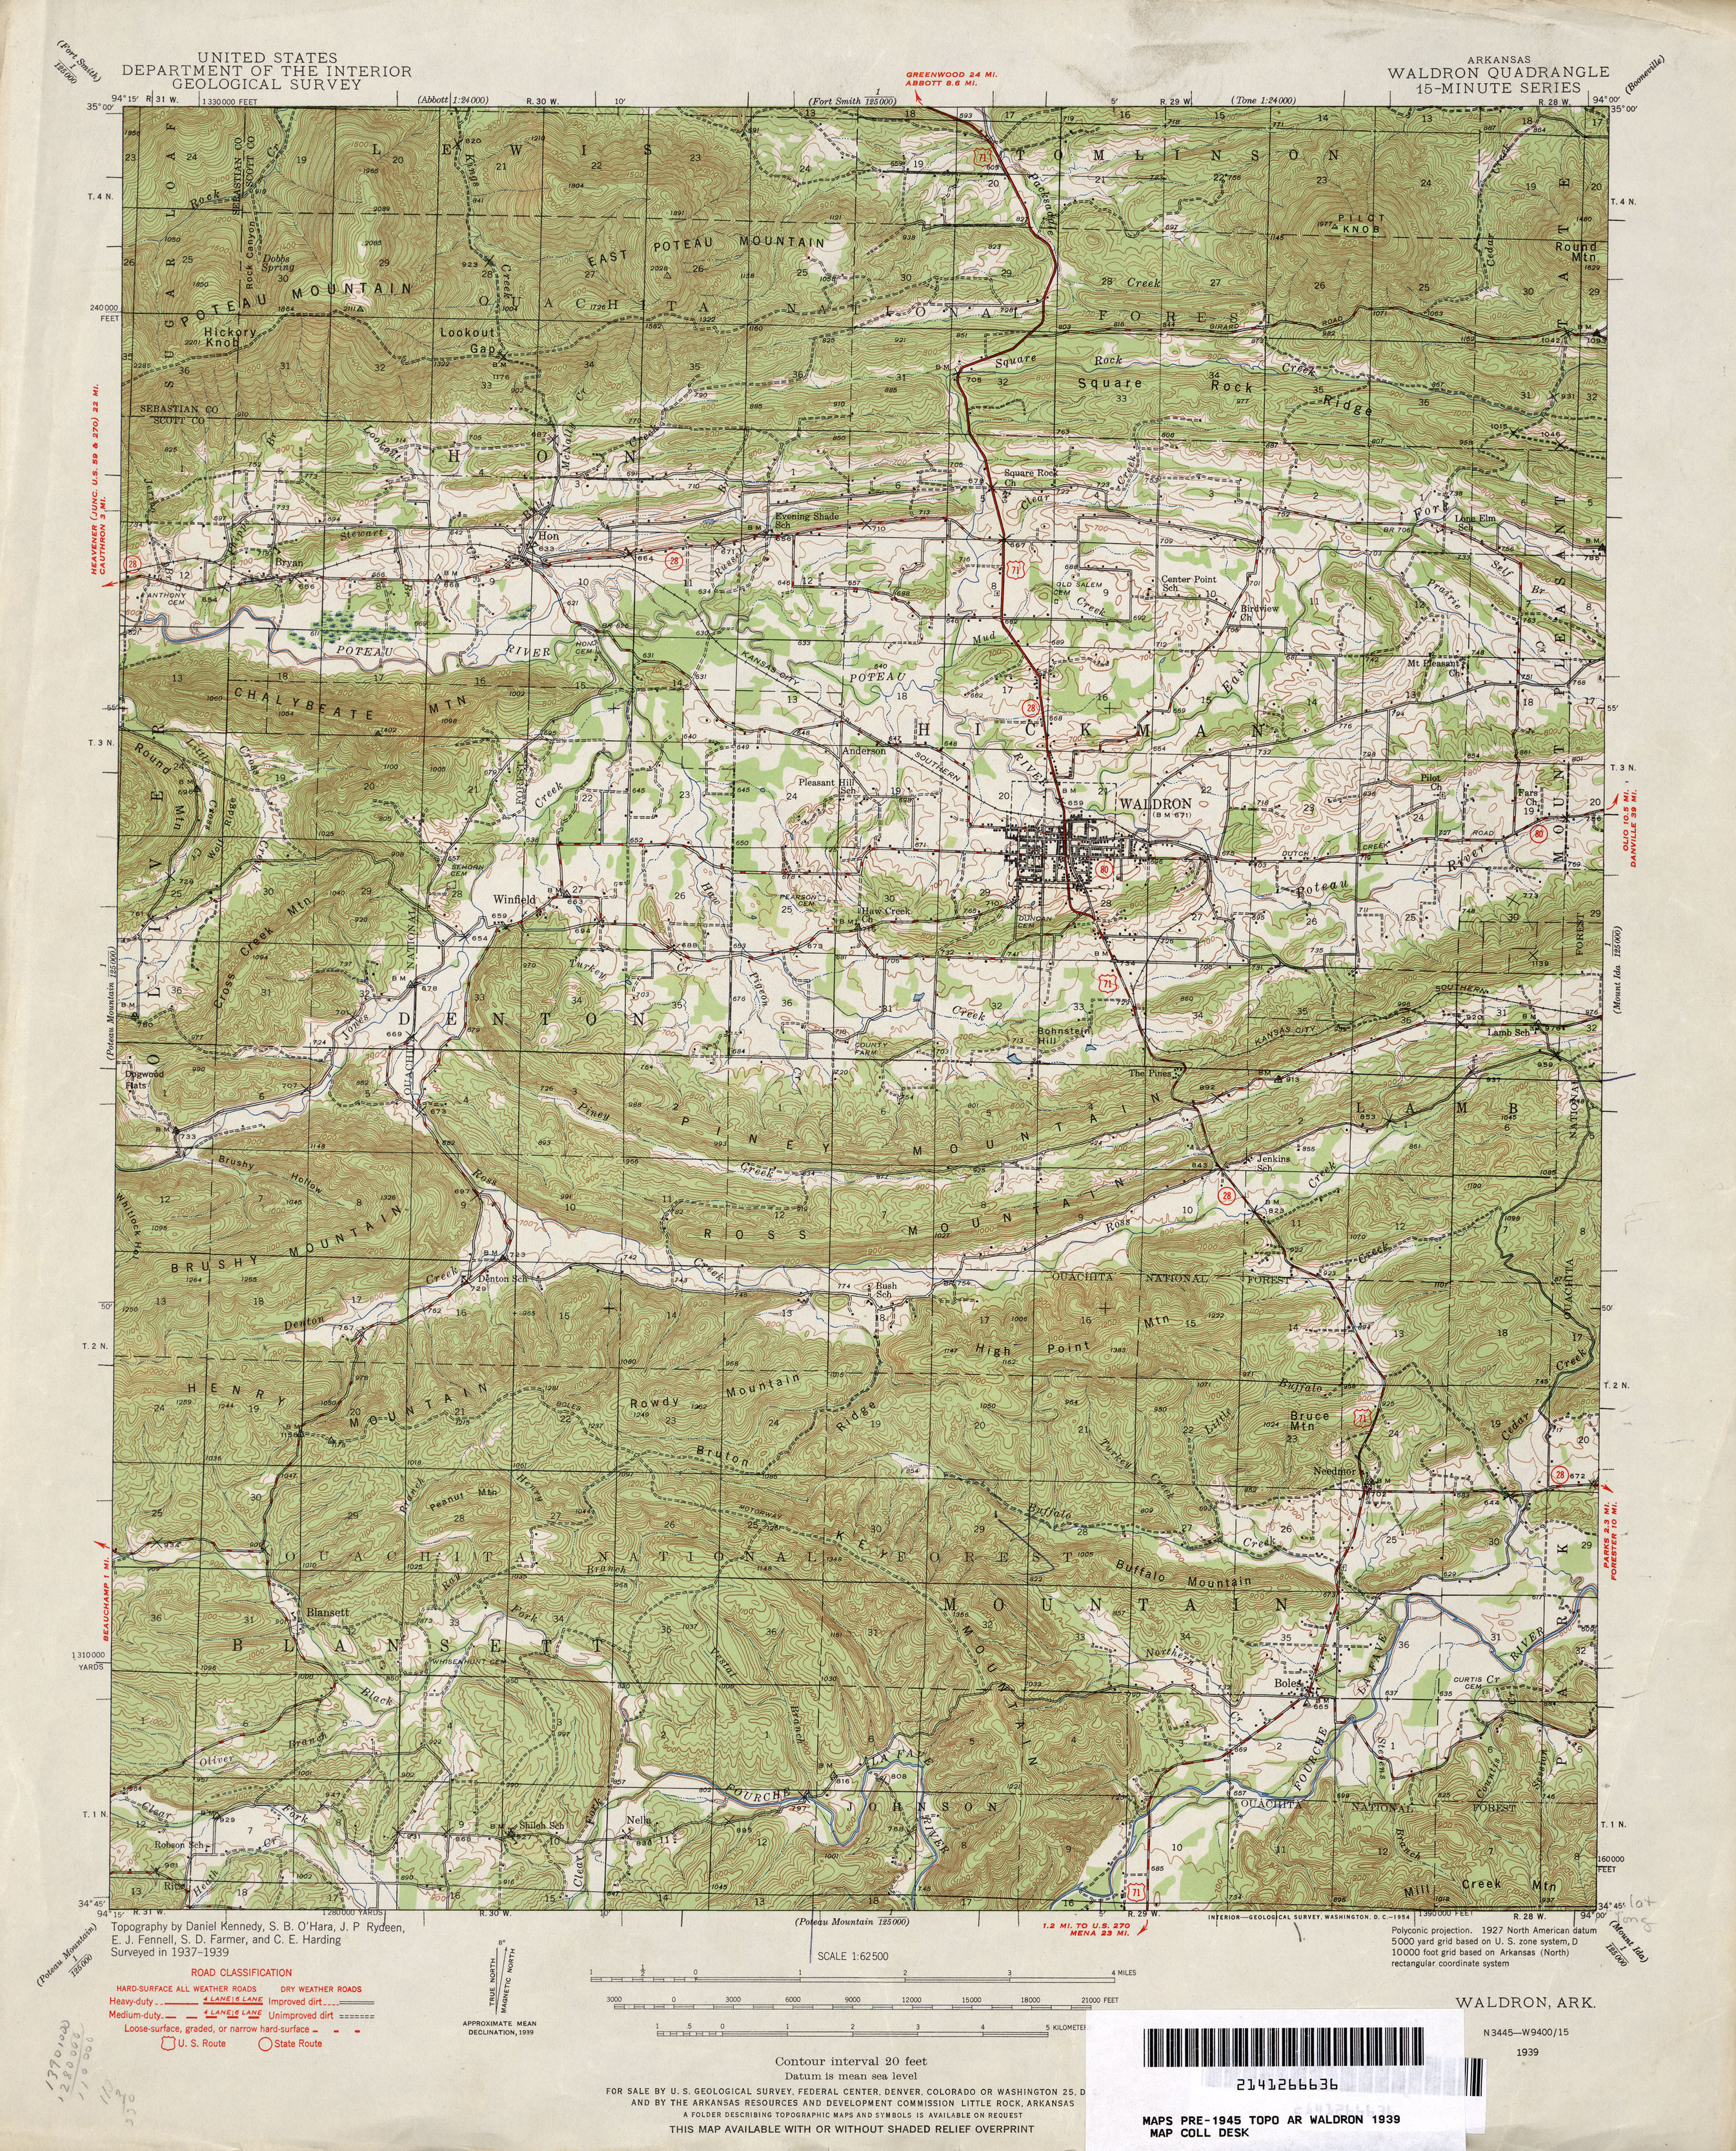 Arkansas Historical Topographic Maps - Perry-Castañeda Map ...